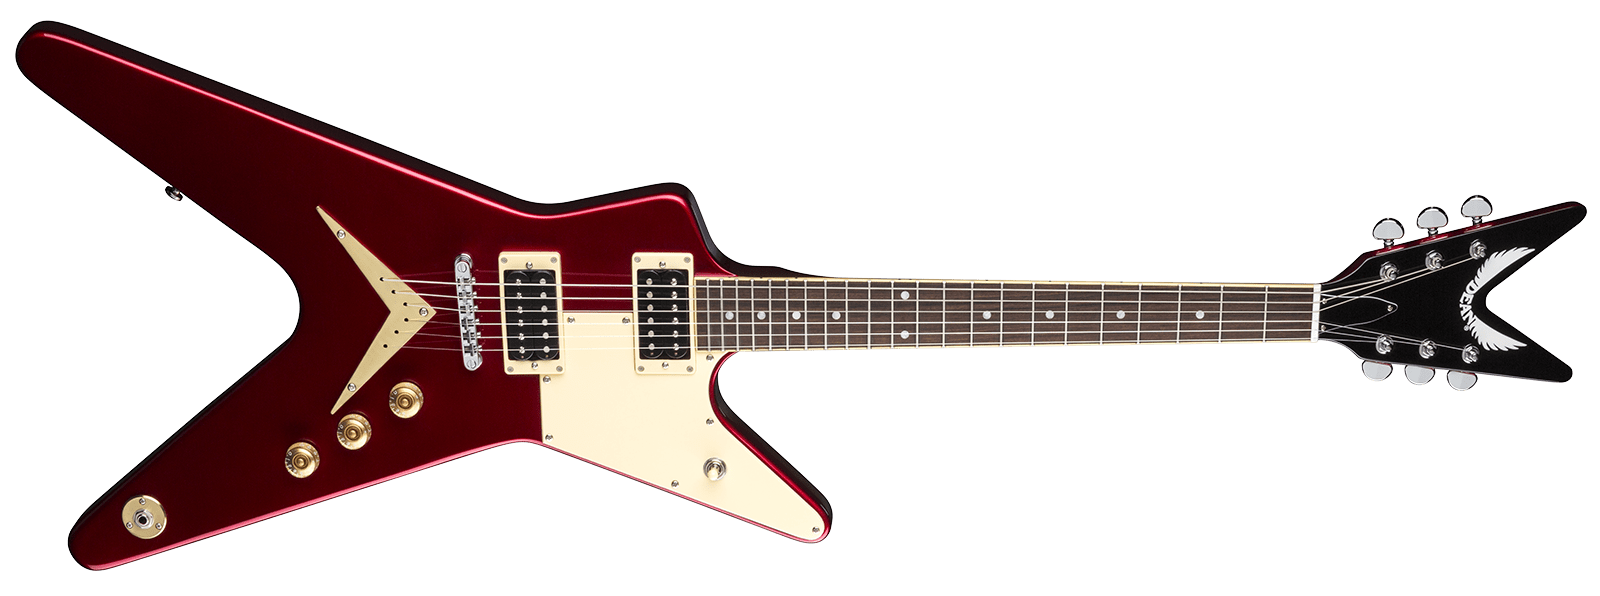 ML 79 Standard w/Half PG - Metallic Red